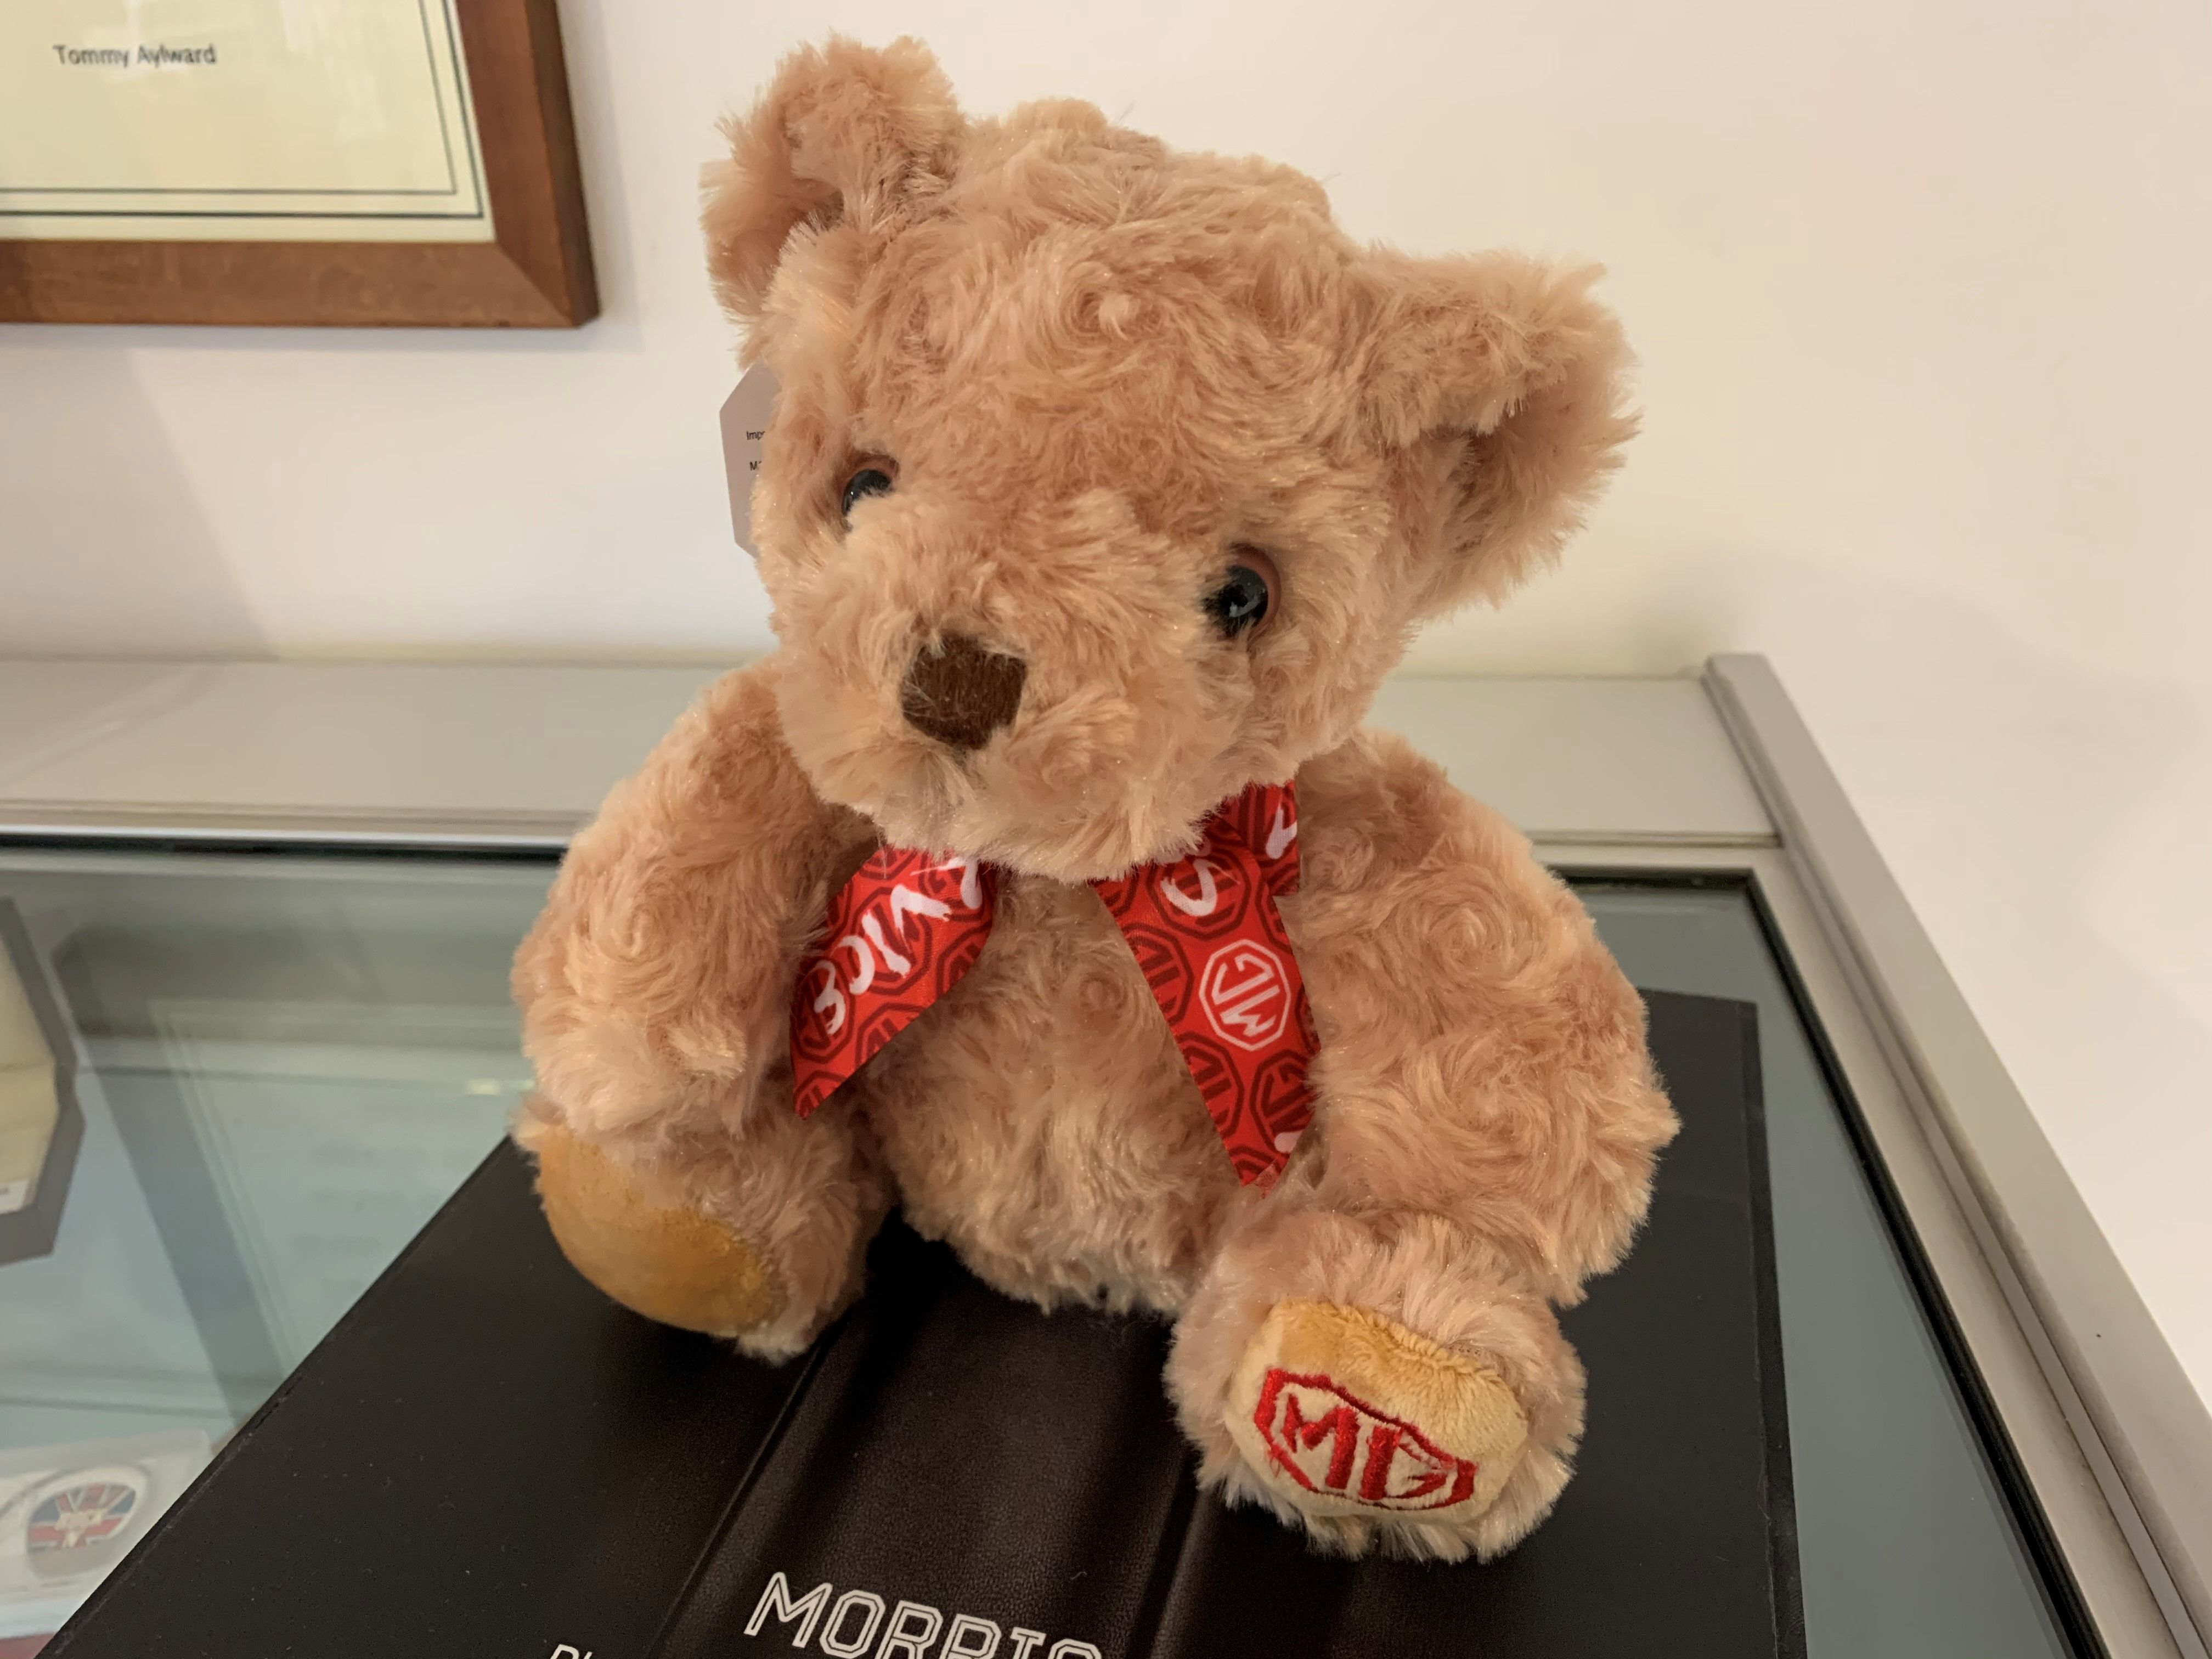 INTRODUCING THE 2021 MORRIS THE BEAR!